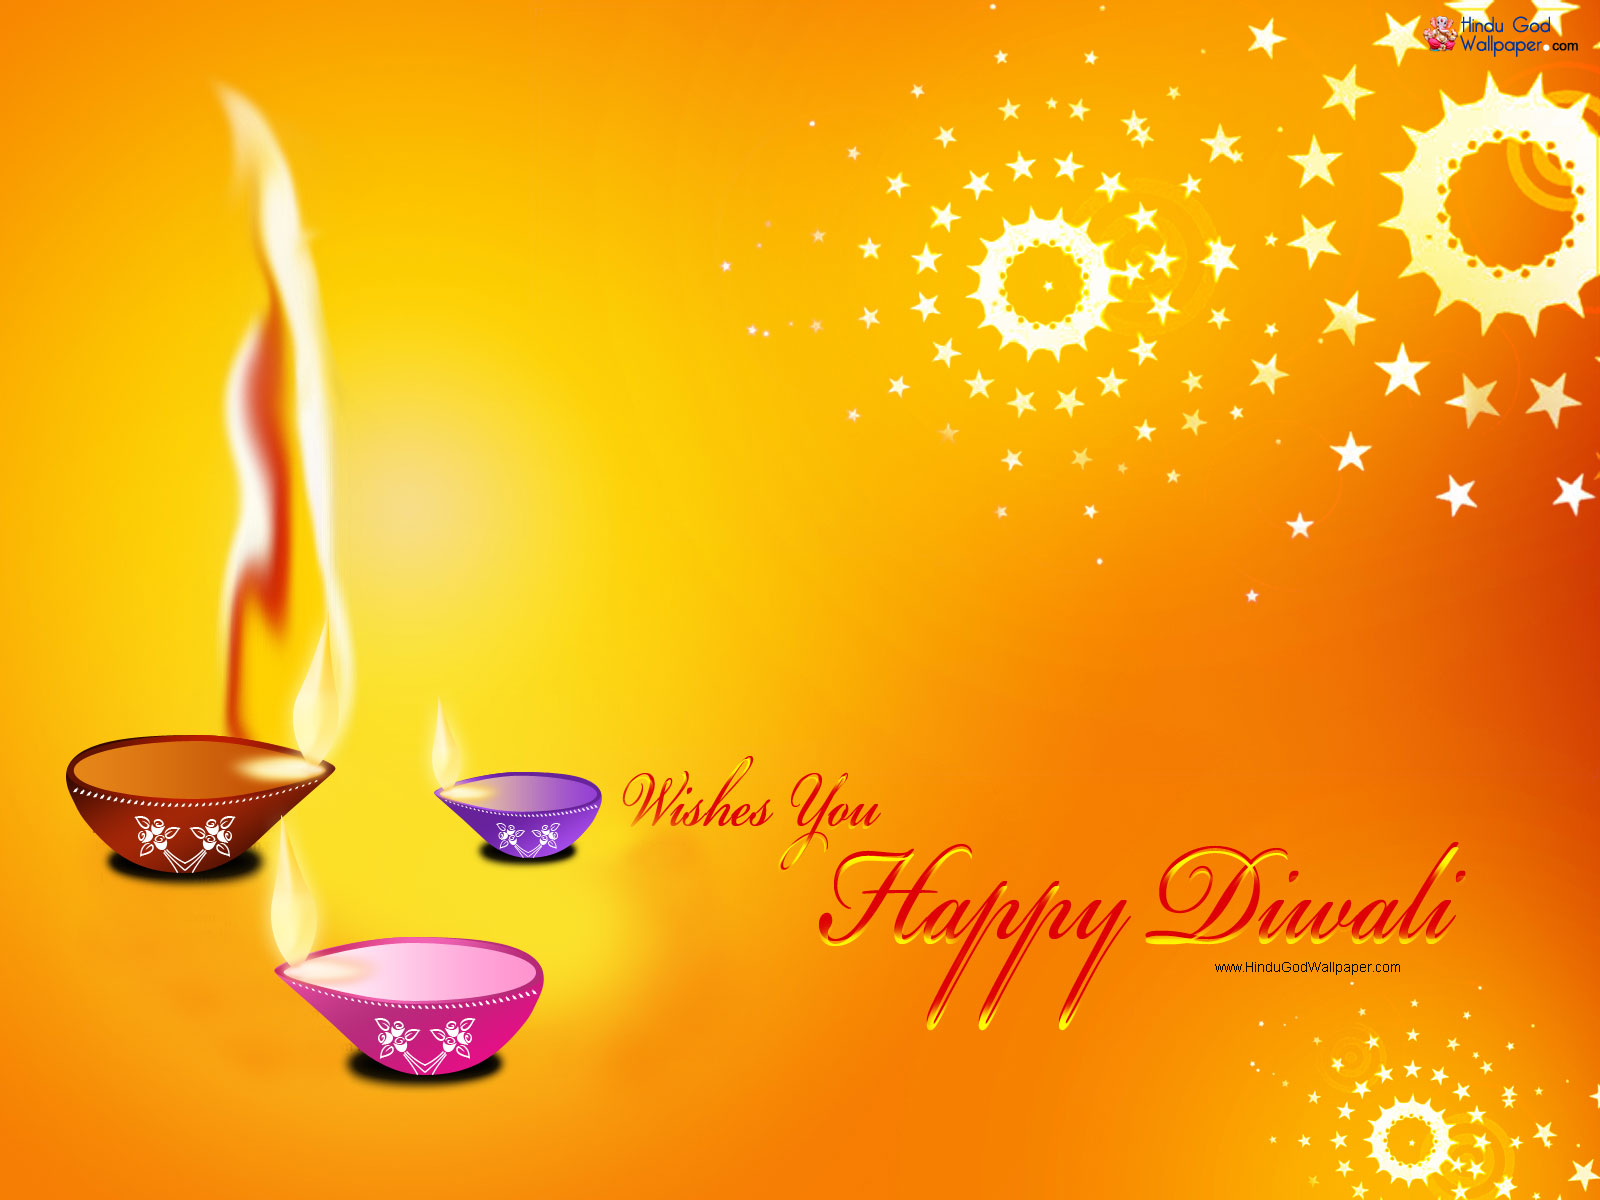 Free Pictures of Diwali @@2017@@ | Diwali 2018 Wallpapers ...